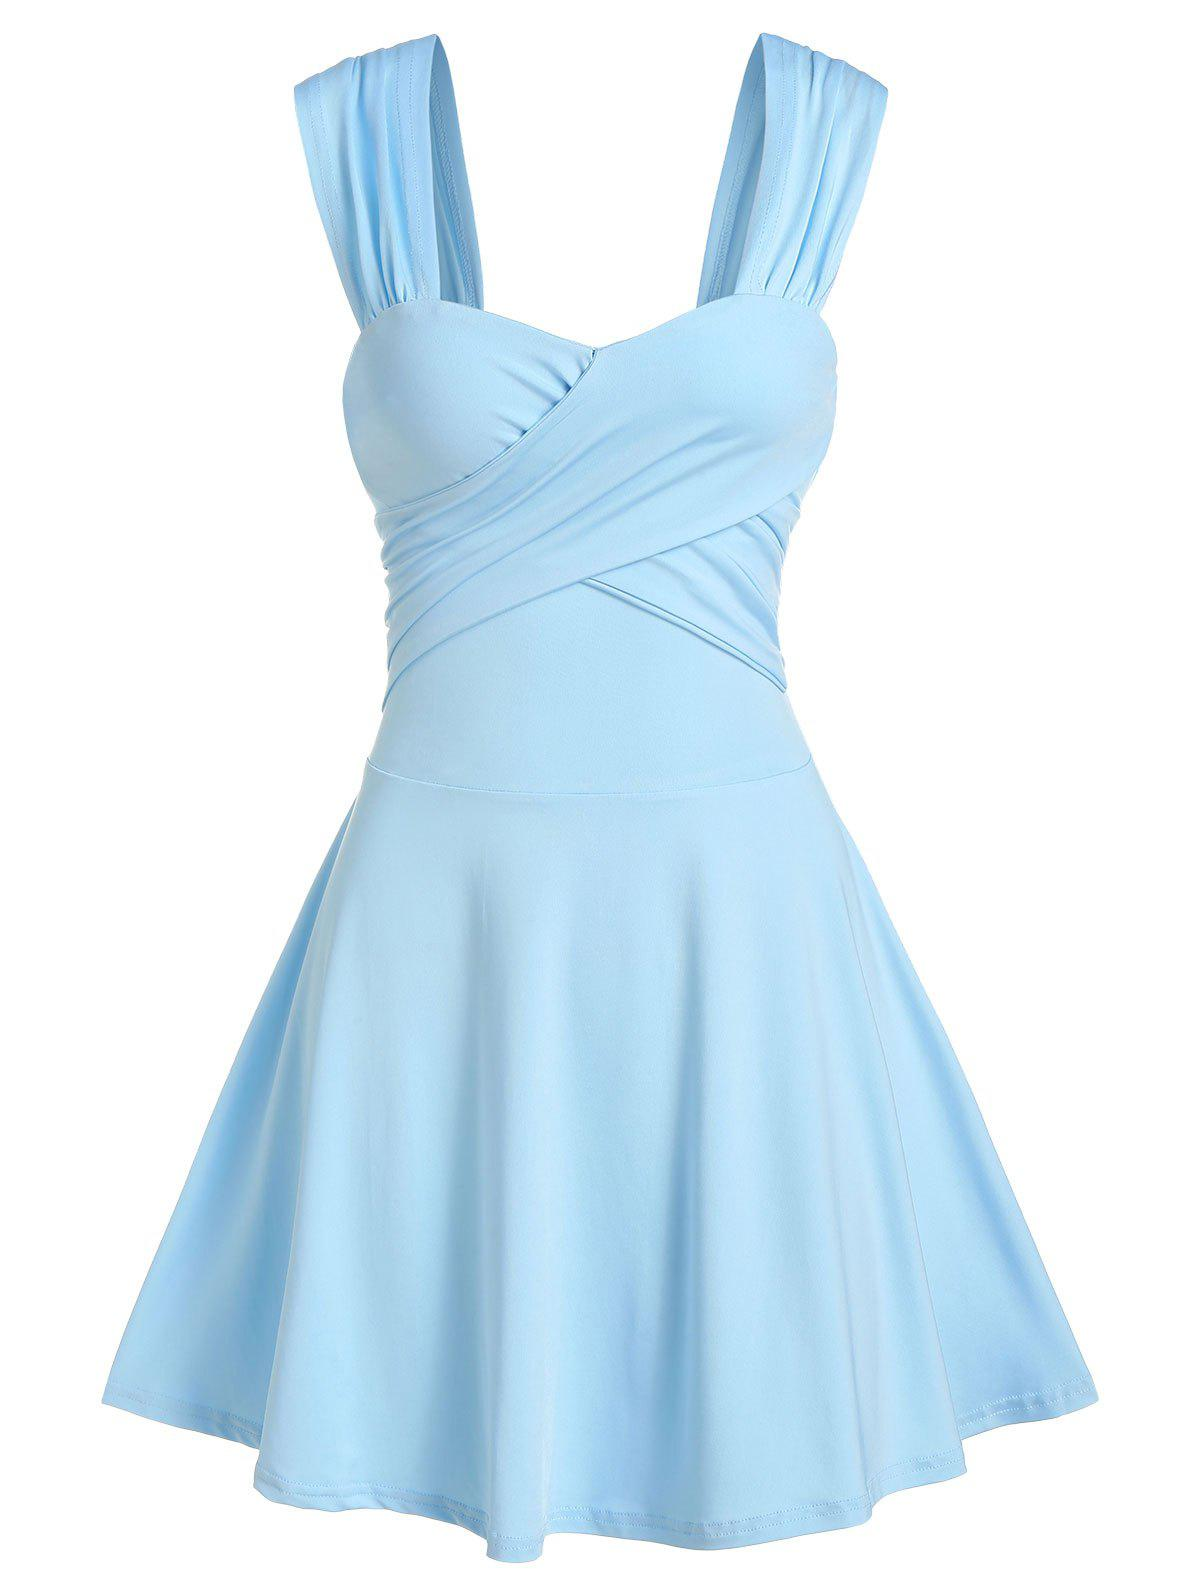 Sleeveless Crossover Flare Dress - DAY SKY BLUE 3XL